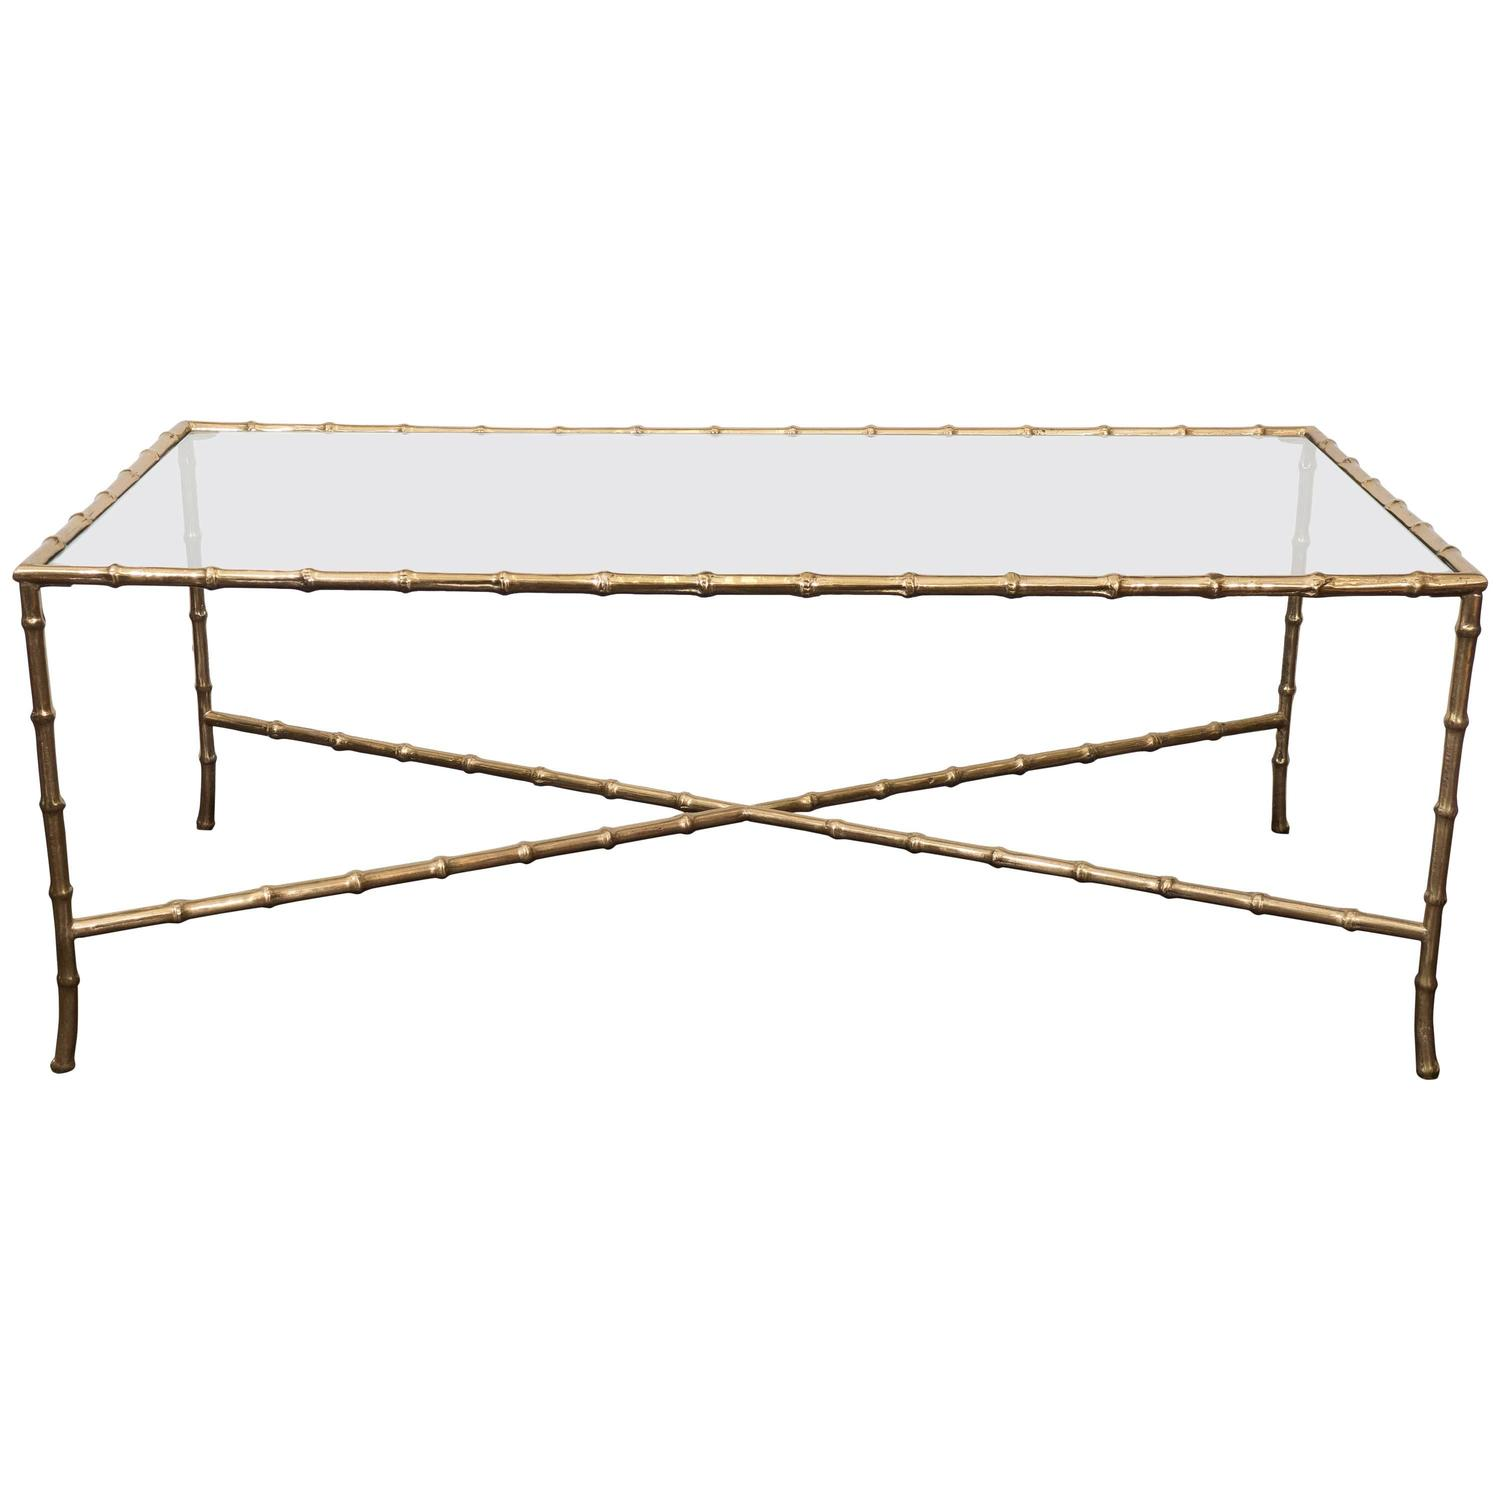 Brass Faux Bamboo Coffee Table: Mid-Century Brass Faux Bamboo Coffee Table By Maison